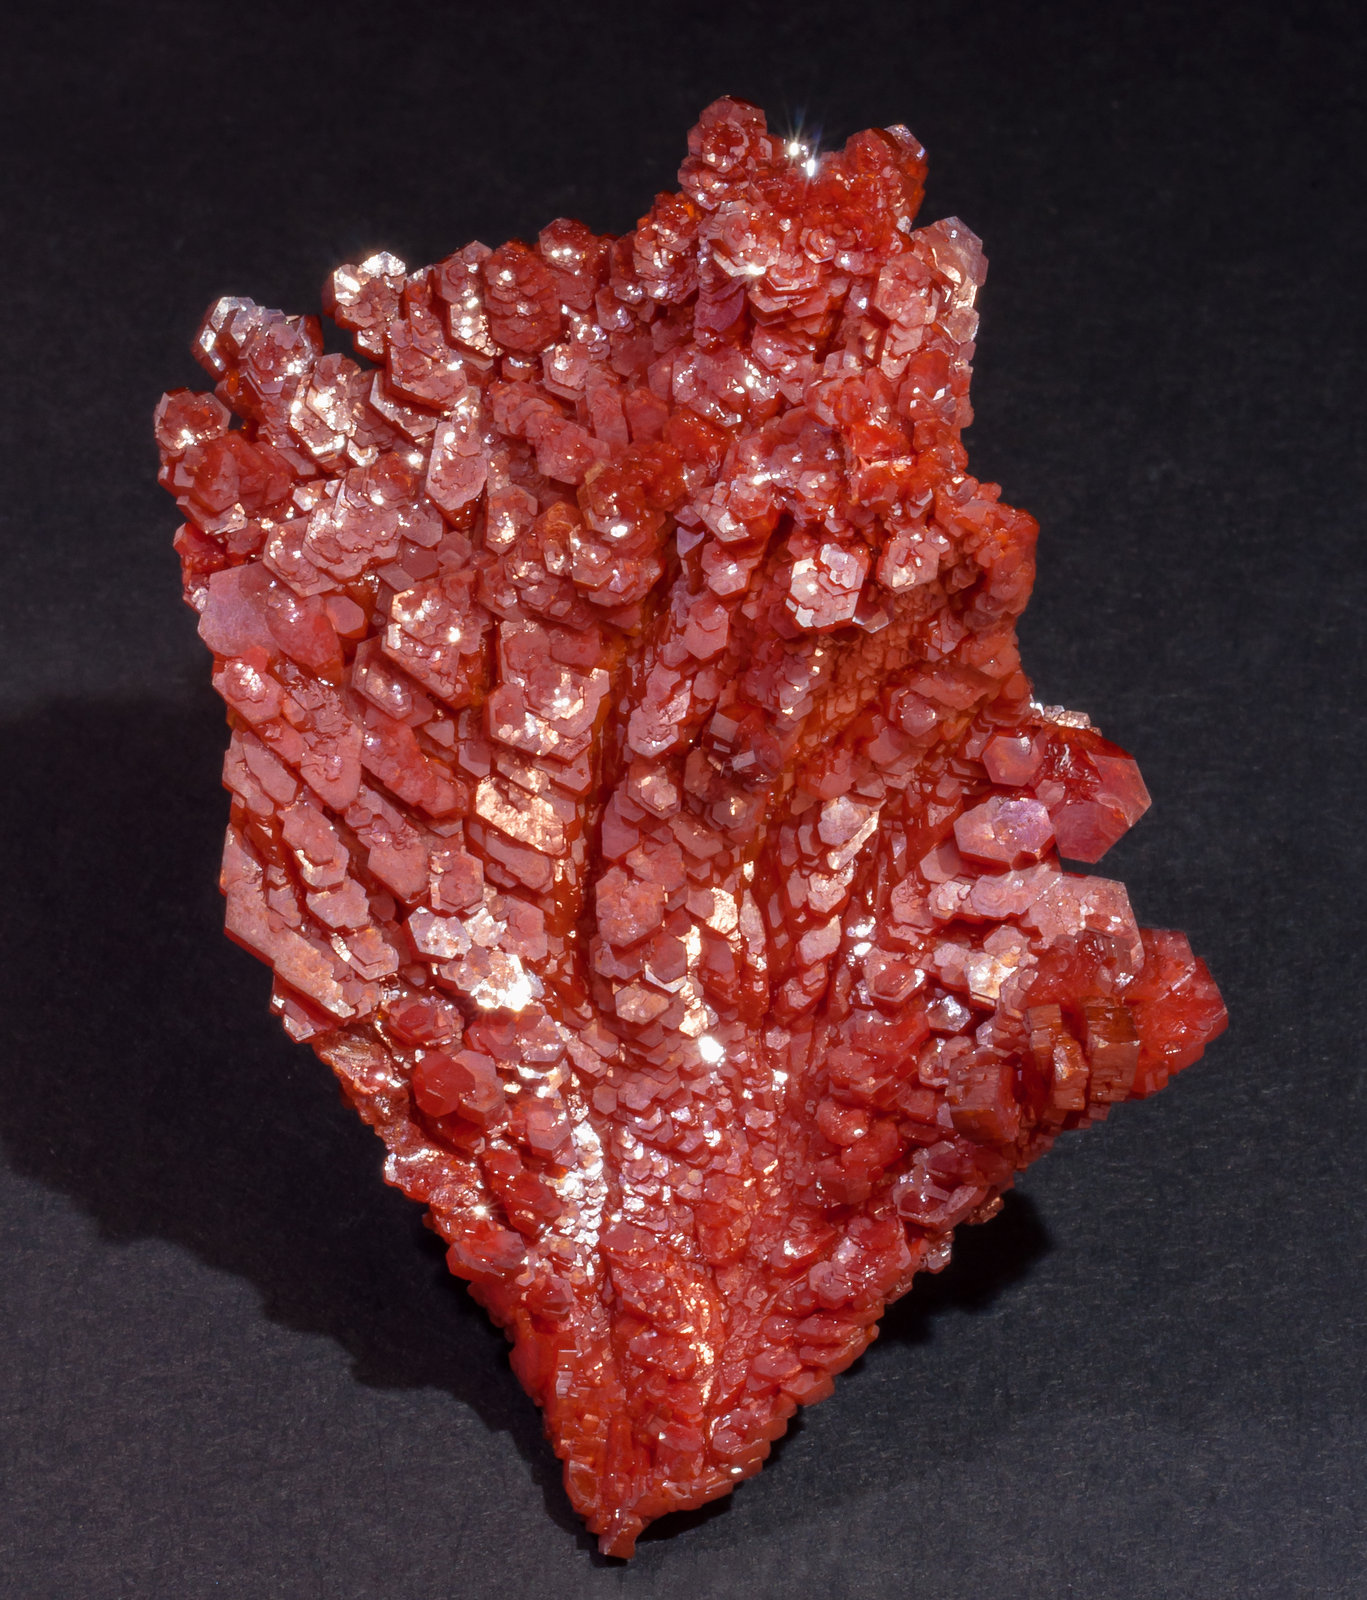 specimens/s_imagesAL5/Vanadinite-ET46AL5r.jpg